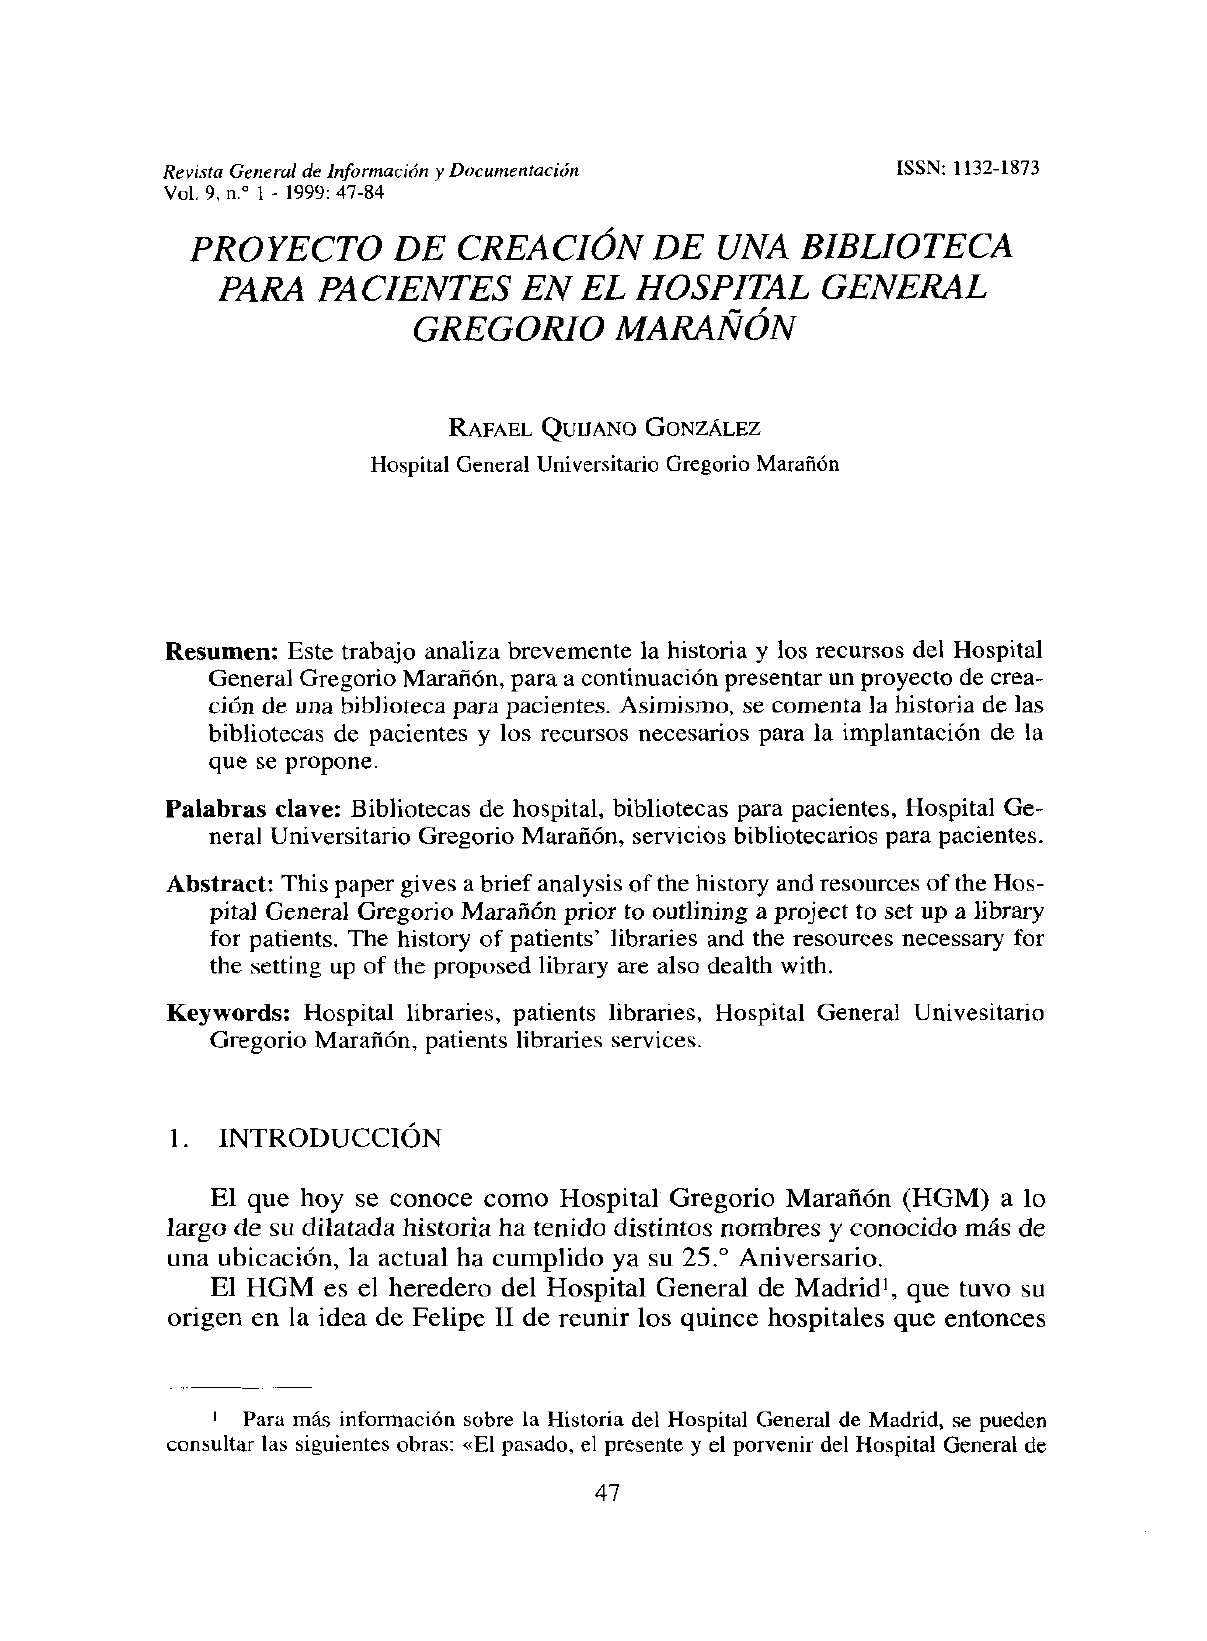 Proyecto de creacin de Biblioteca de Pacientes en el Hospital Gregorio Maran